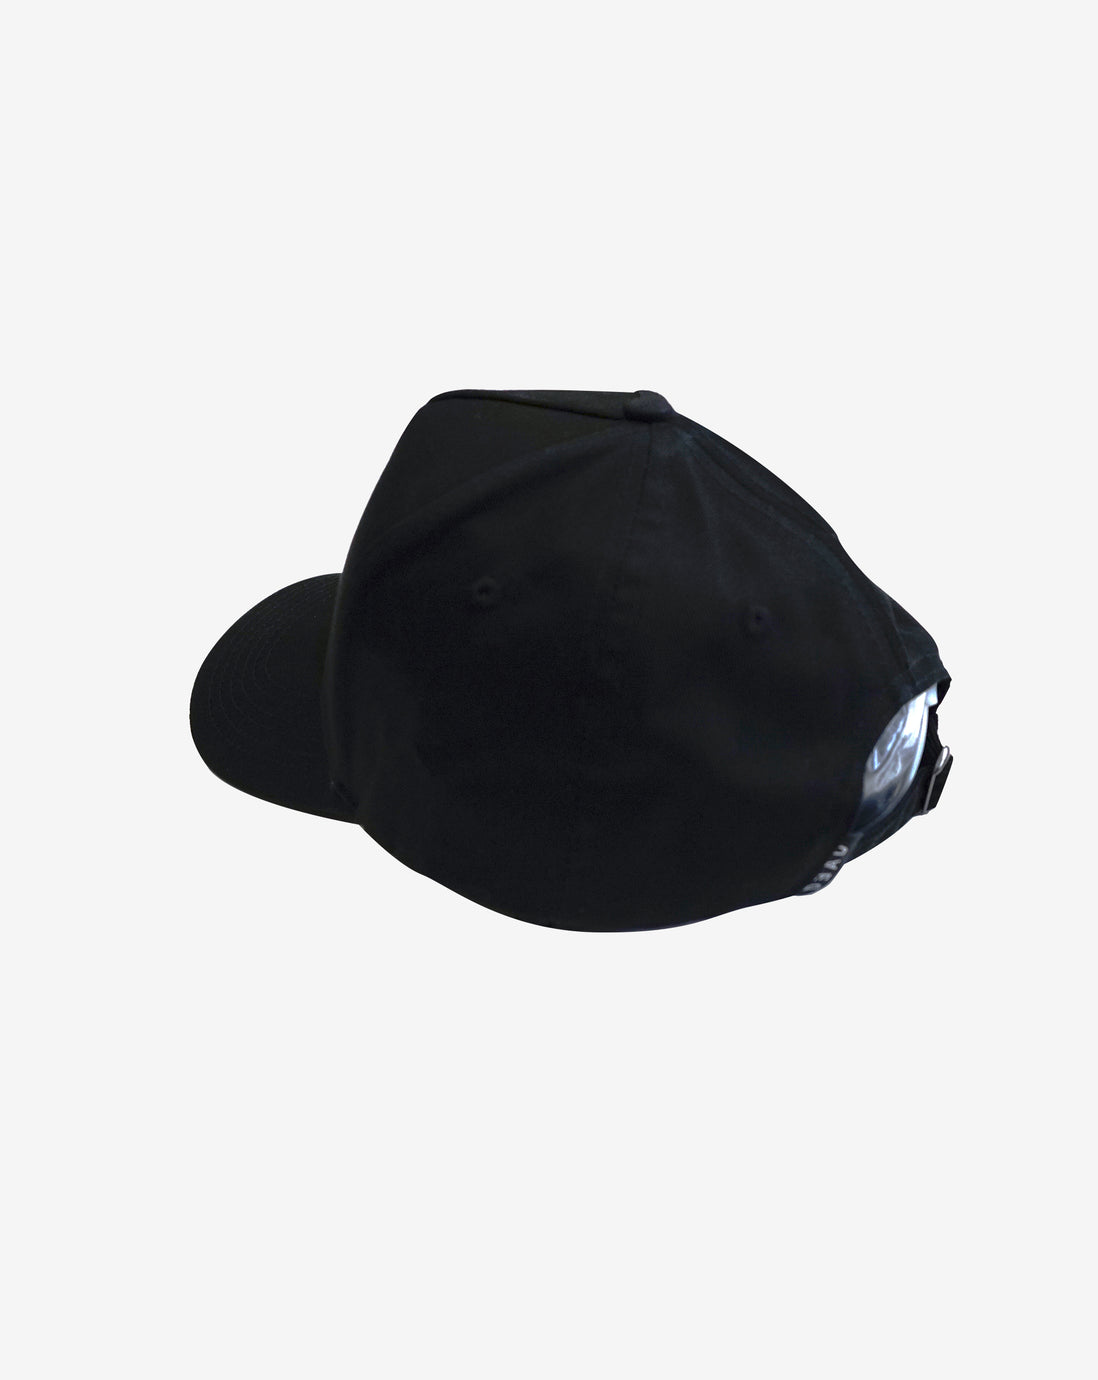 BADGE SNAP BACK - BLACK